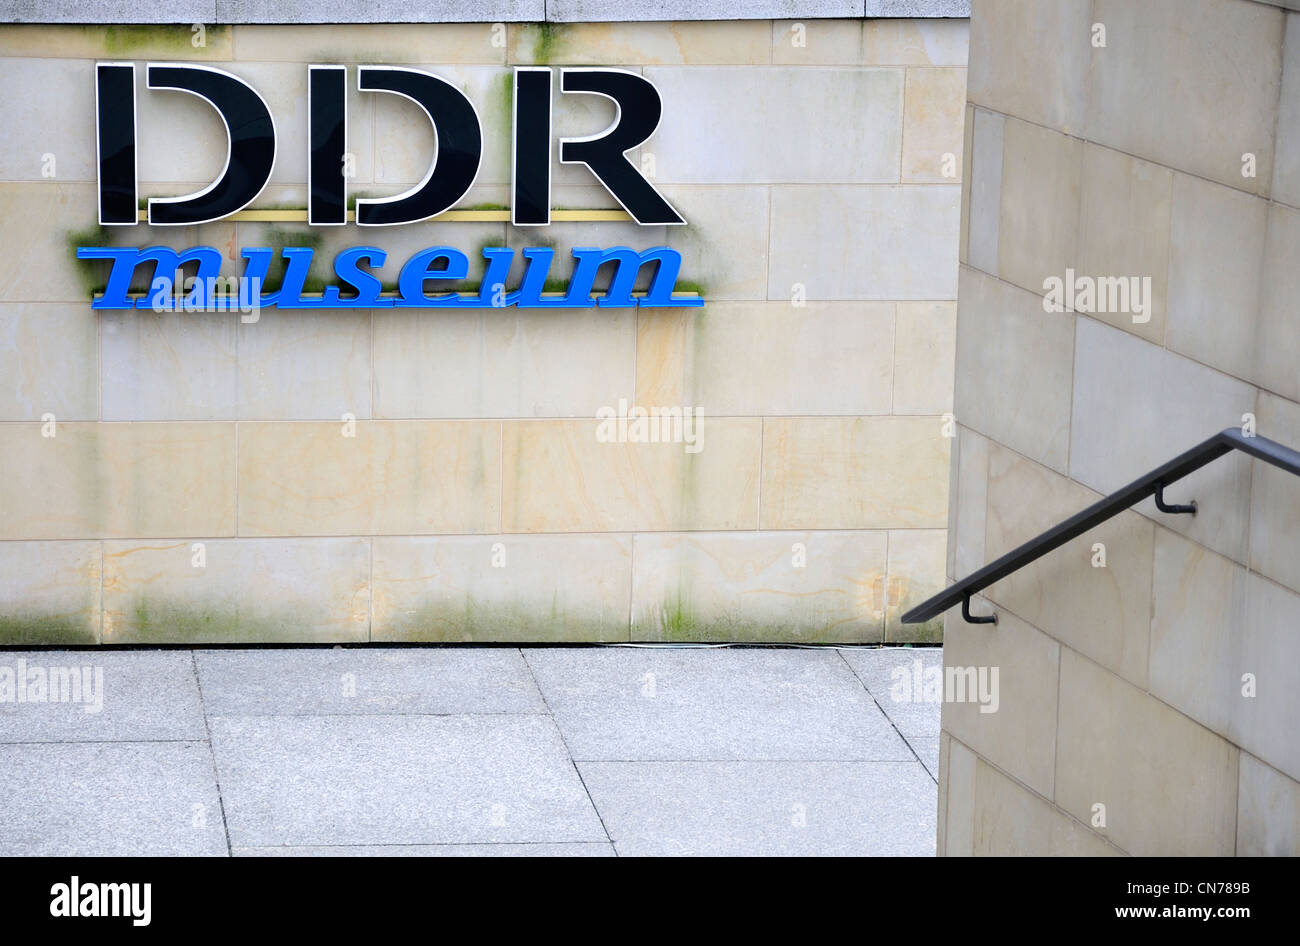 Berlin, Germany. DDR Museum sign on the Spree embankment - Stock Image